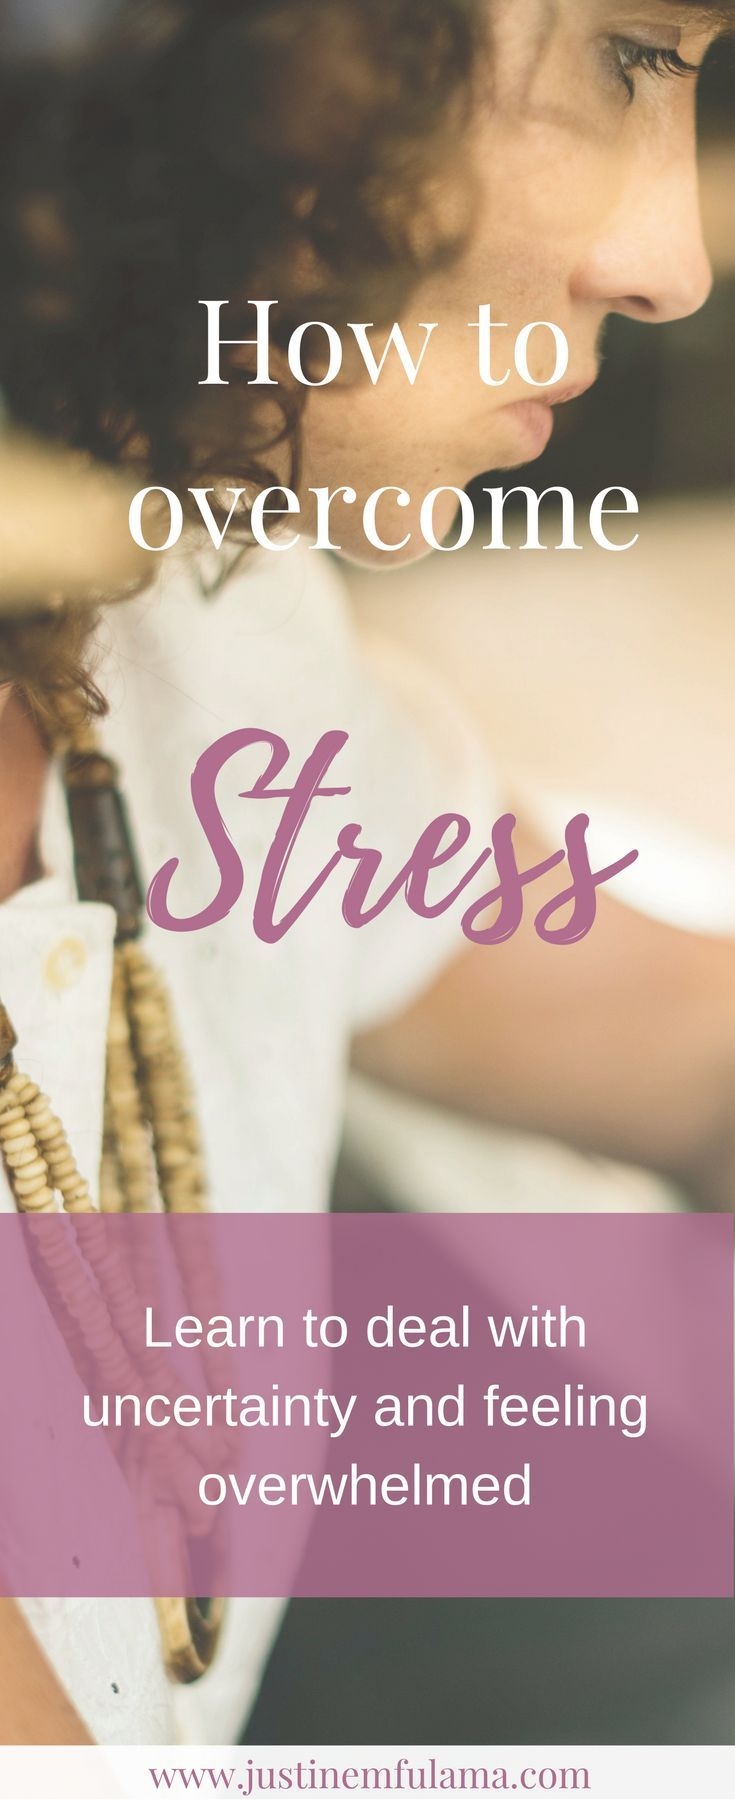 How to overcome stress - Learn to deal with uncertainty and feeling overwhelmed. #stress #faith #god #anxiety #christian